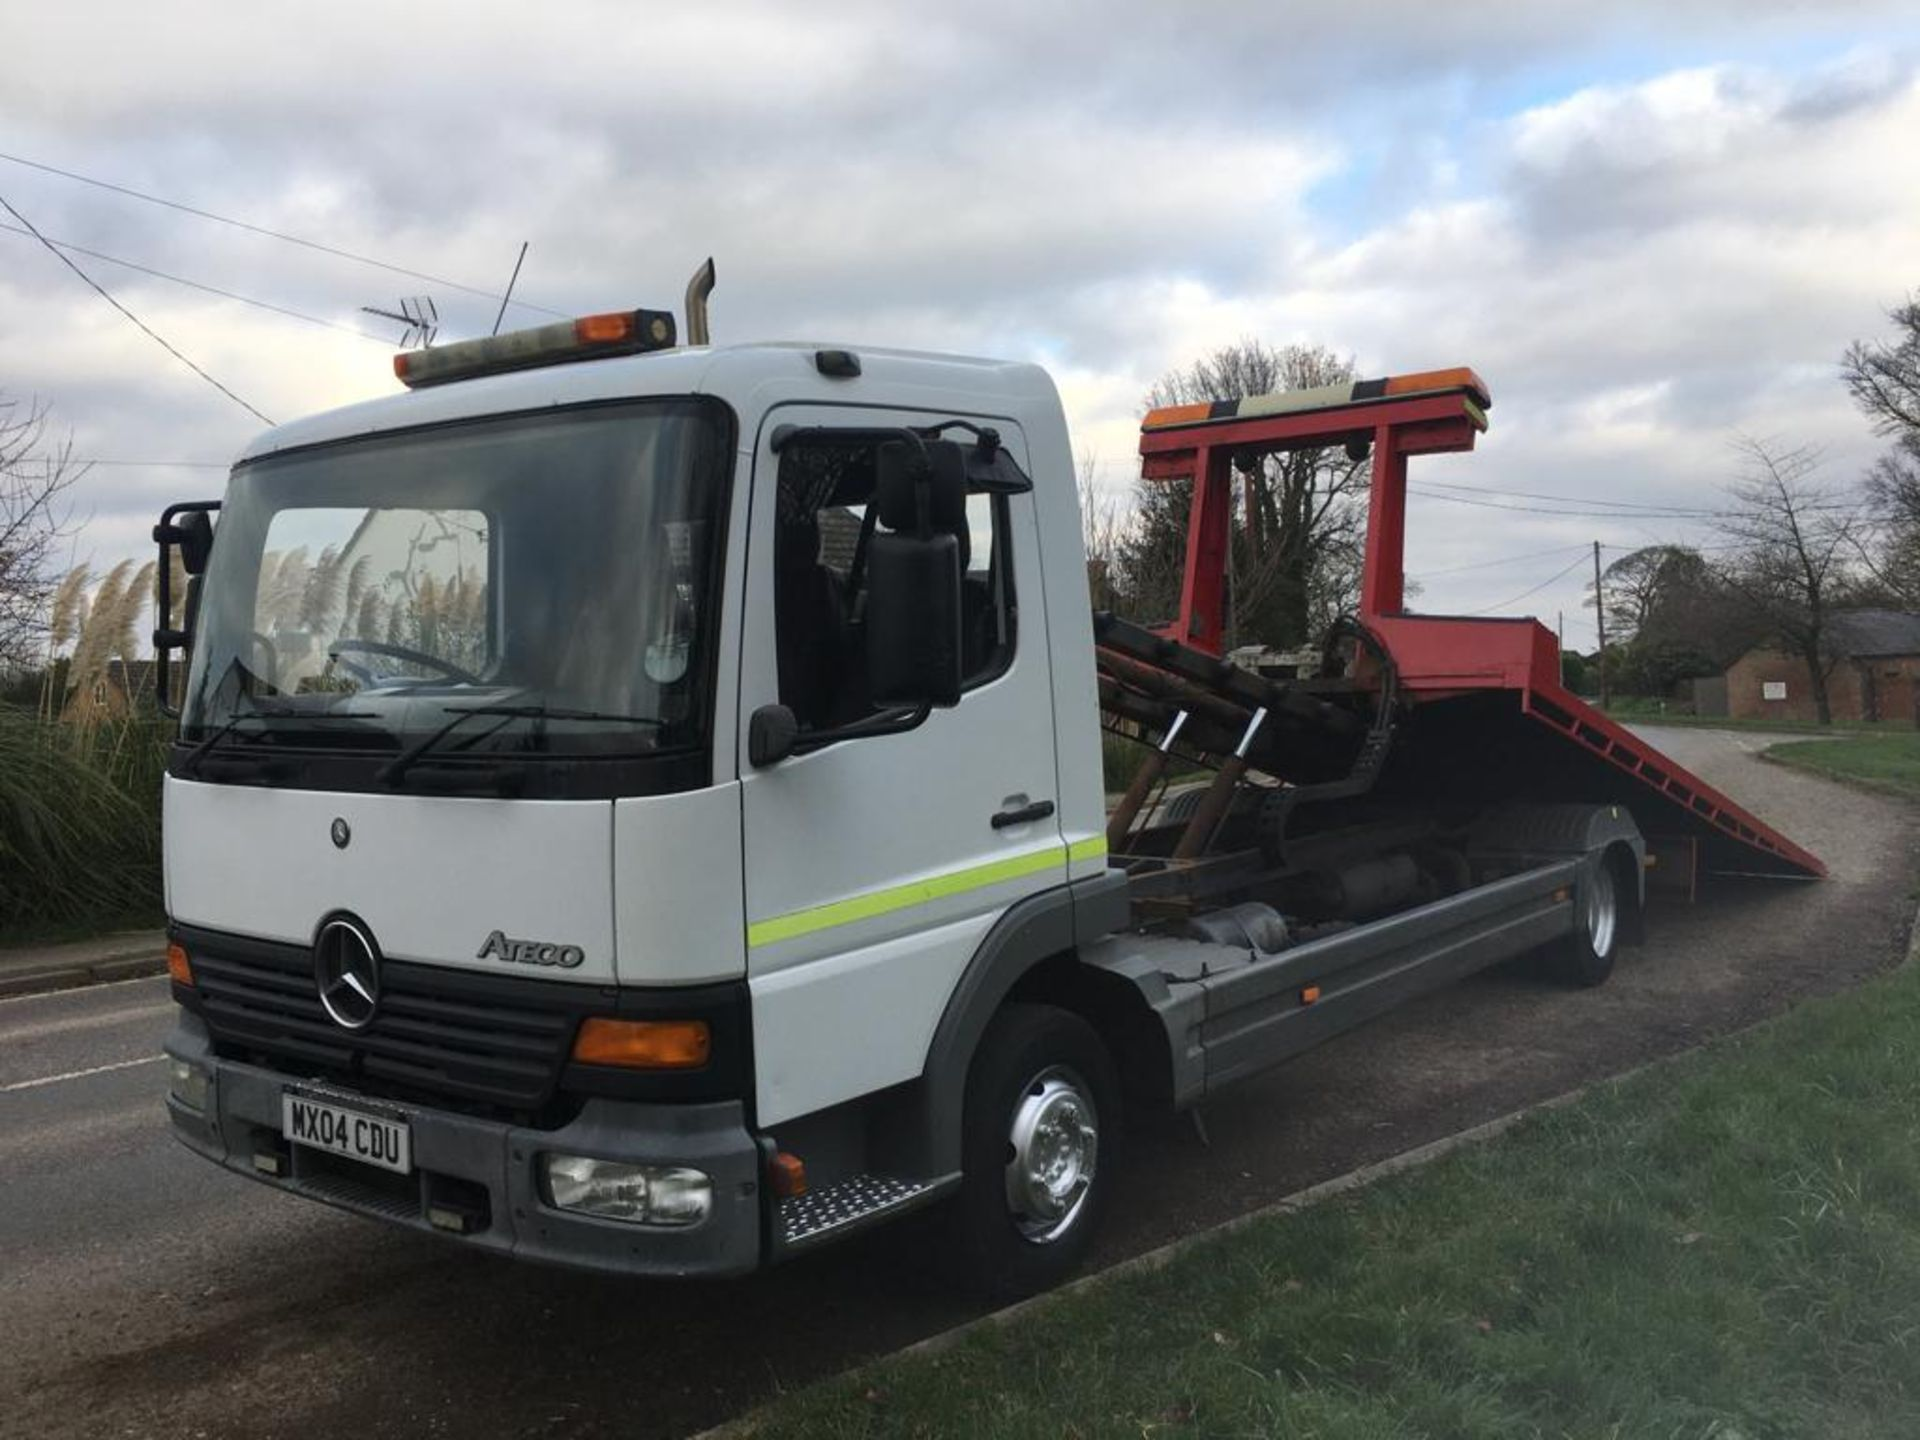 Lot 3 - 2004 MERCEDES BENZ ATEGO TRANSPORTER RECOVERY TRUCK